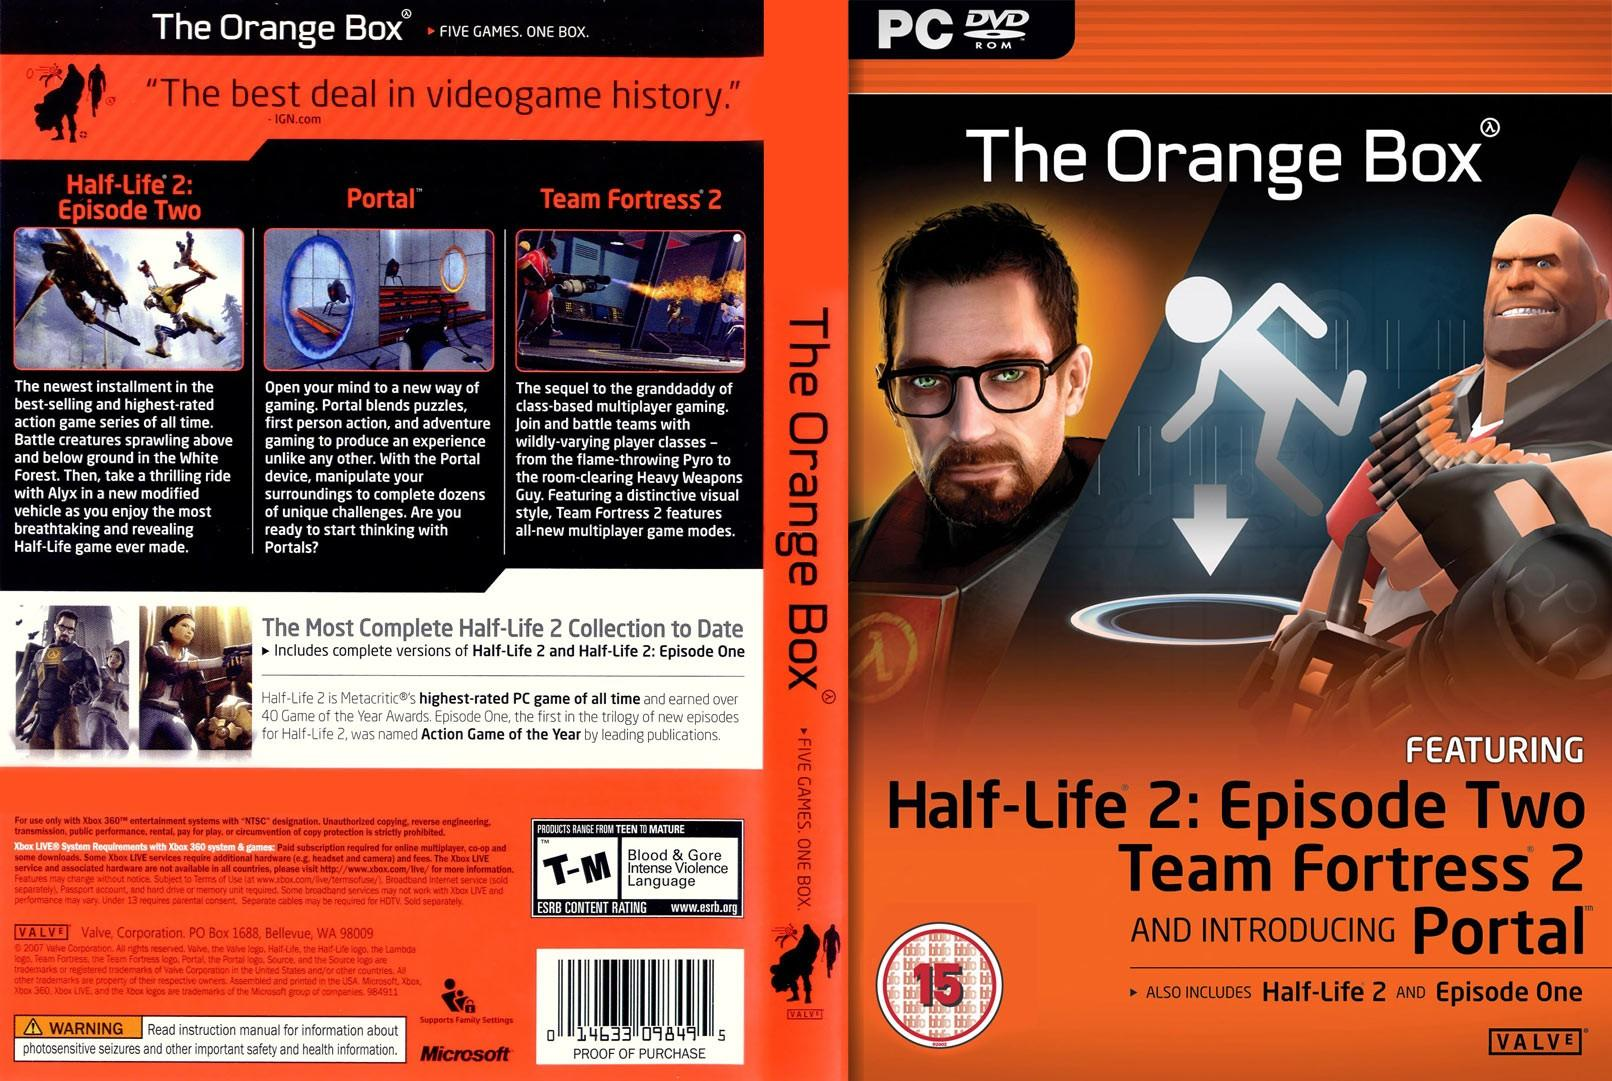 The Orange Box 5 игр HL2 1.2.3 EPISODE TF2 PORTAL|STEAM